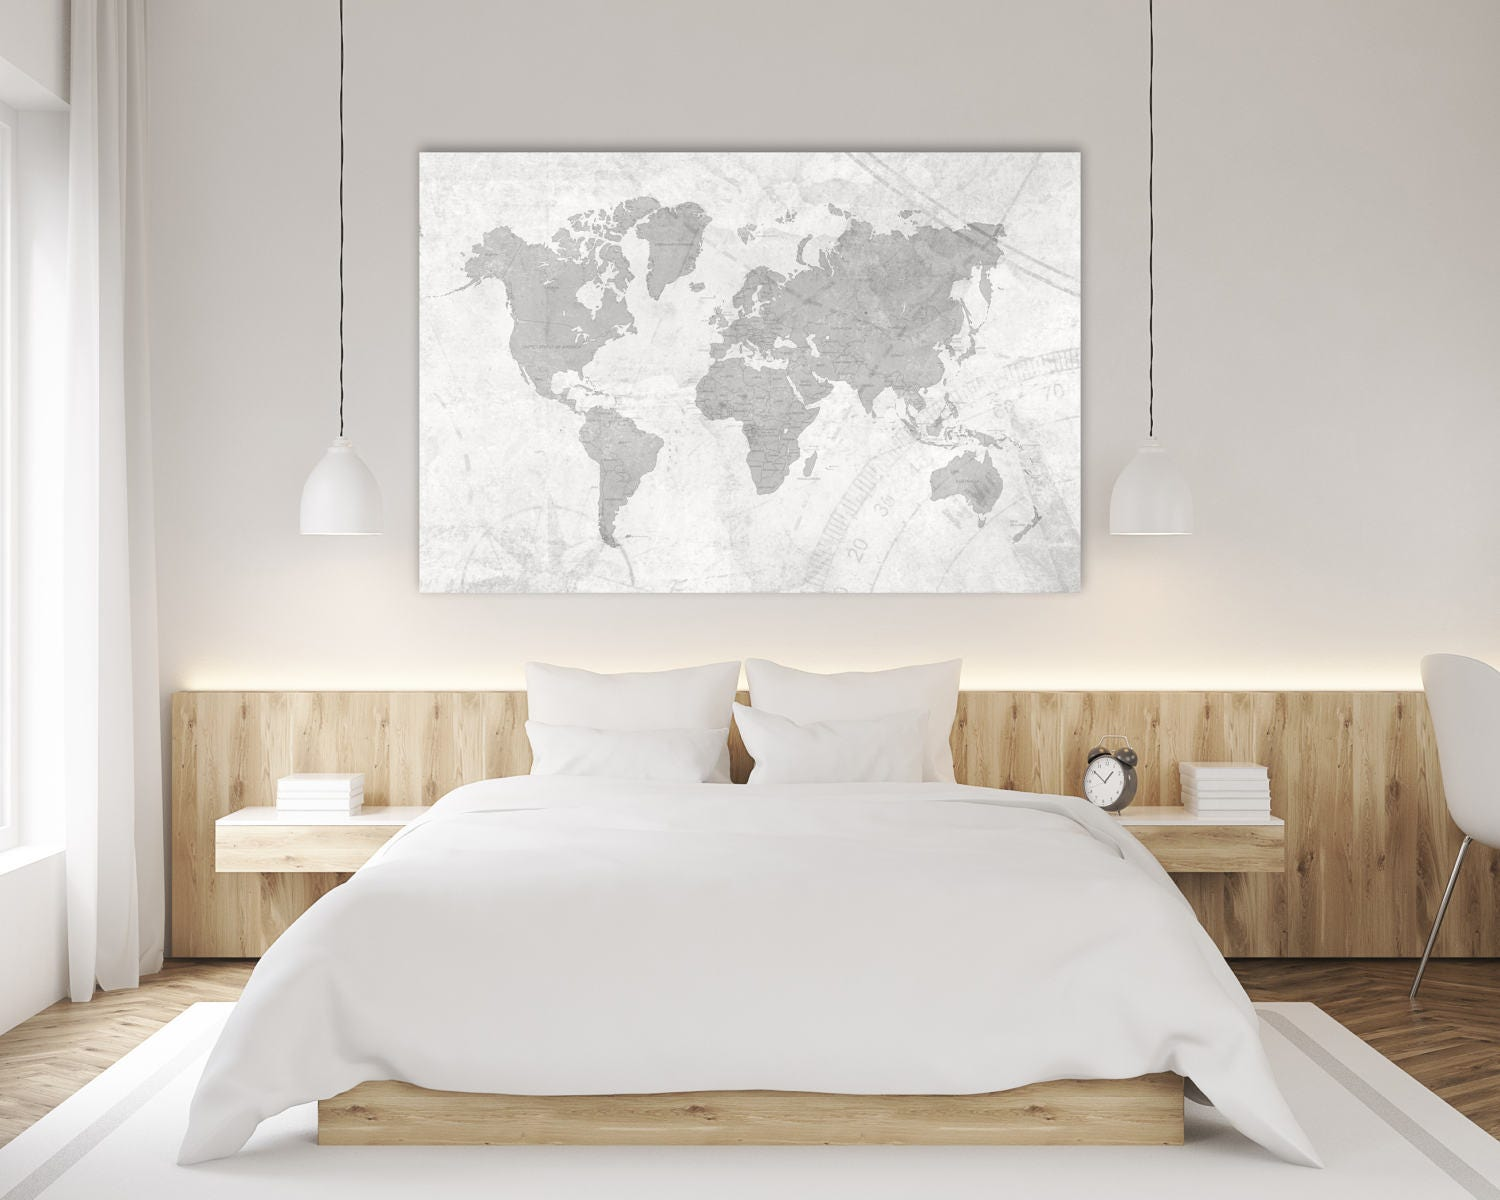 World map canvas print vintage neutral light gray white world map world map canvas print vintage neutral light gray white world map extra large gray wall art vintage oversized horizontal wall art poster map gumiabroncs Gallery